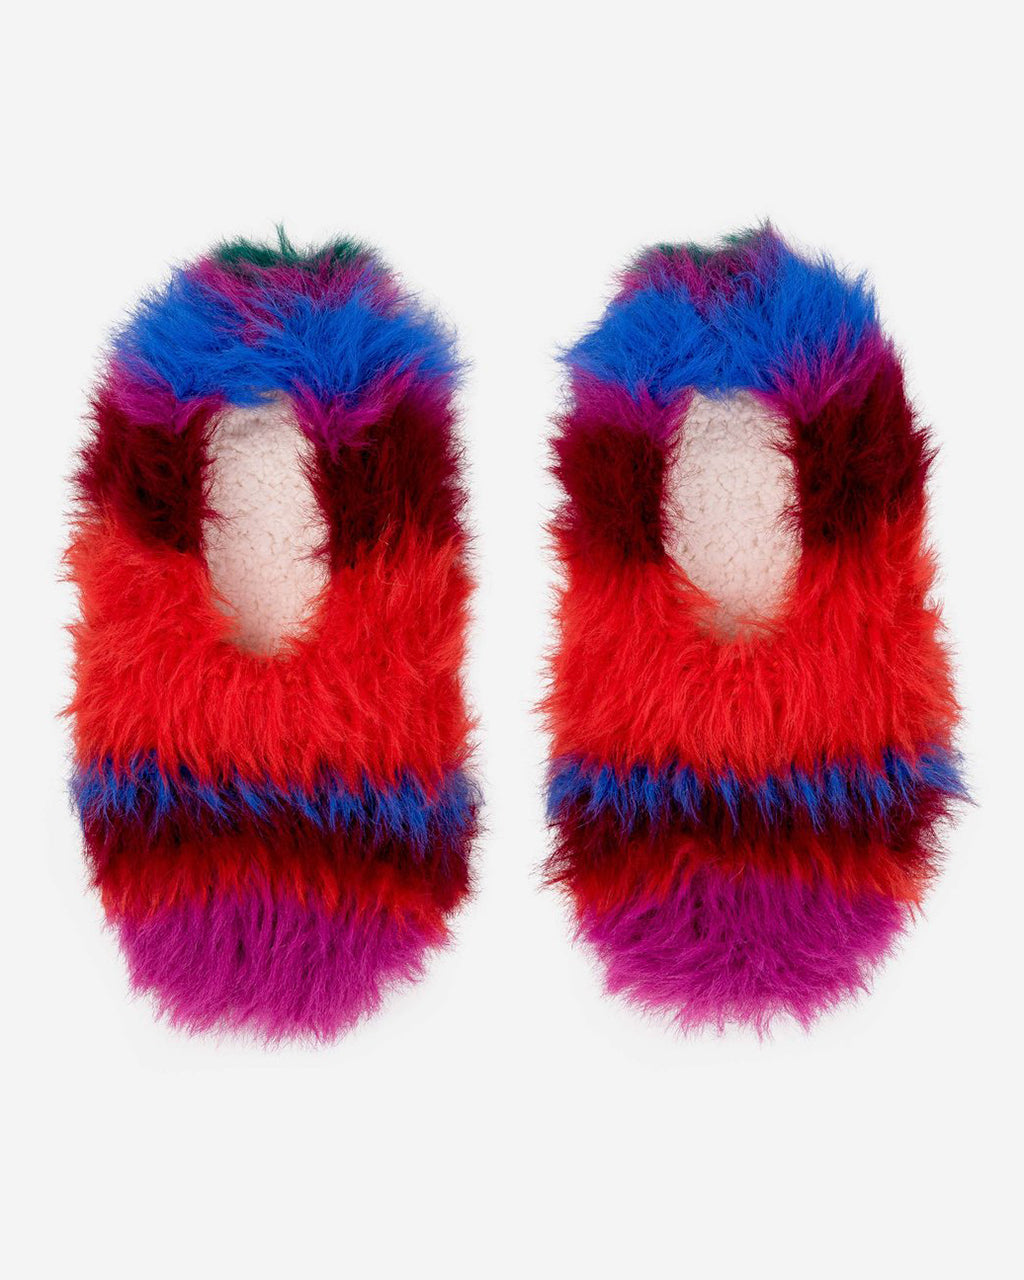 magenta and cobalt fur slippers